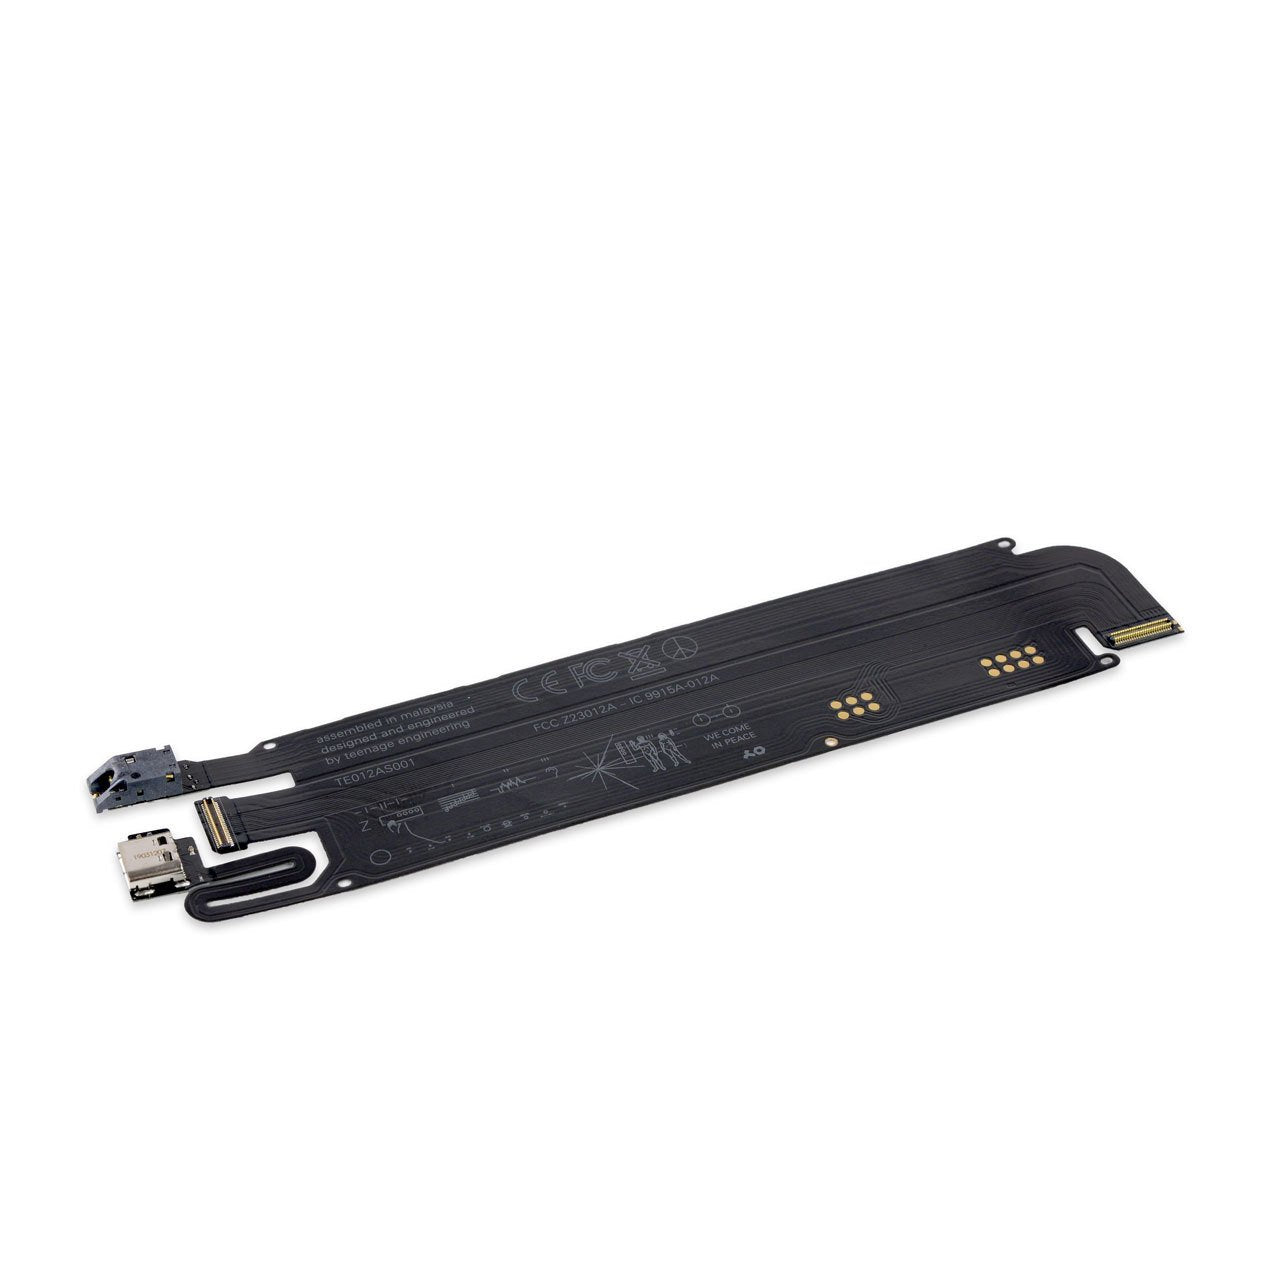 OP-Z Highway Flex Cable